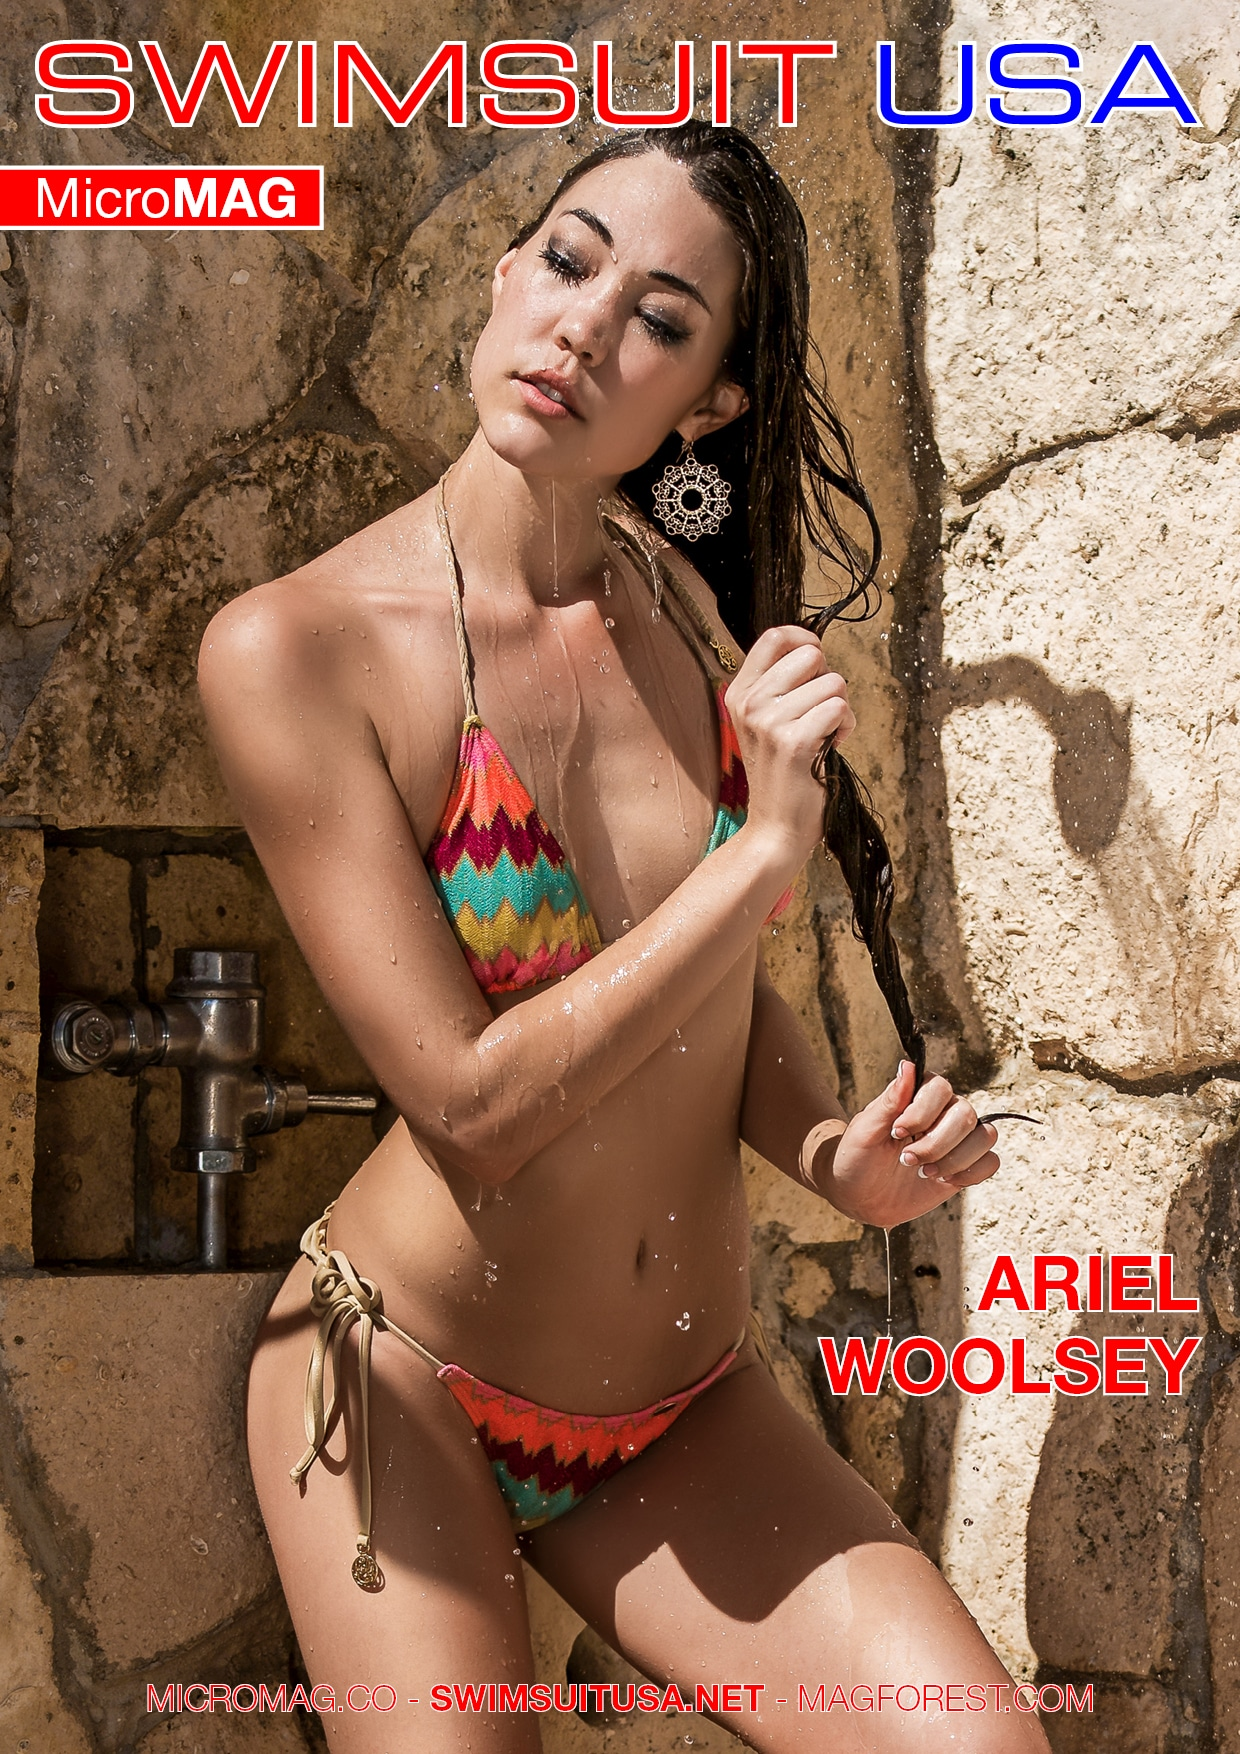 Swimsuit Usa Micromag – Ariel Woolsey – Issue 3